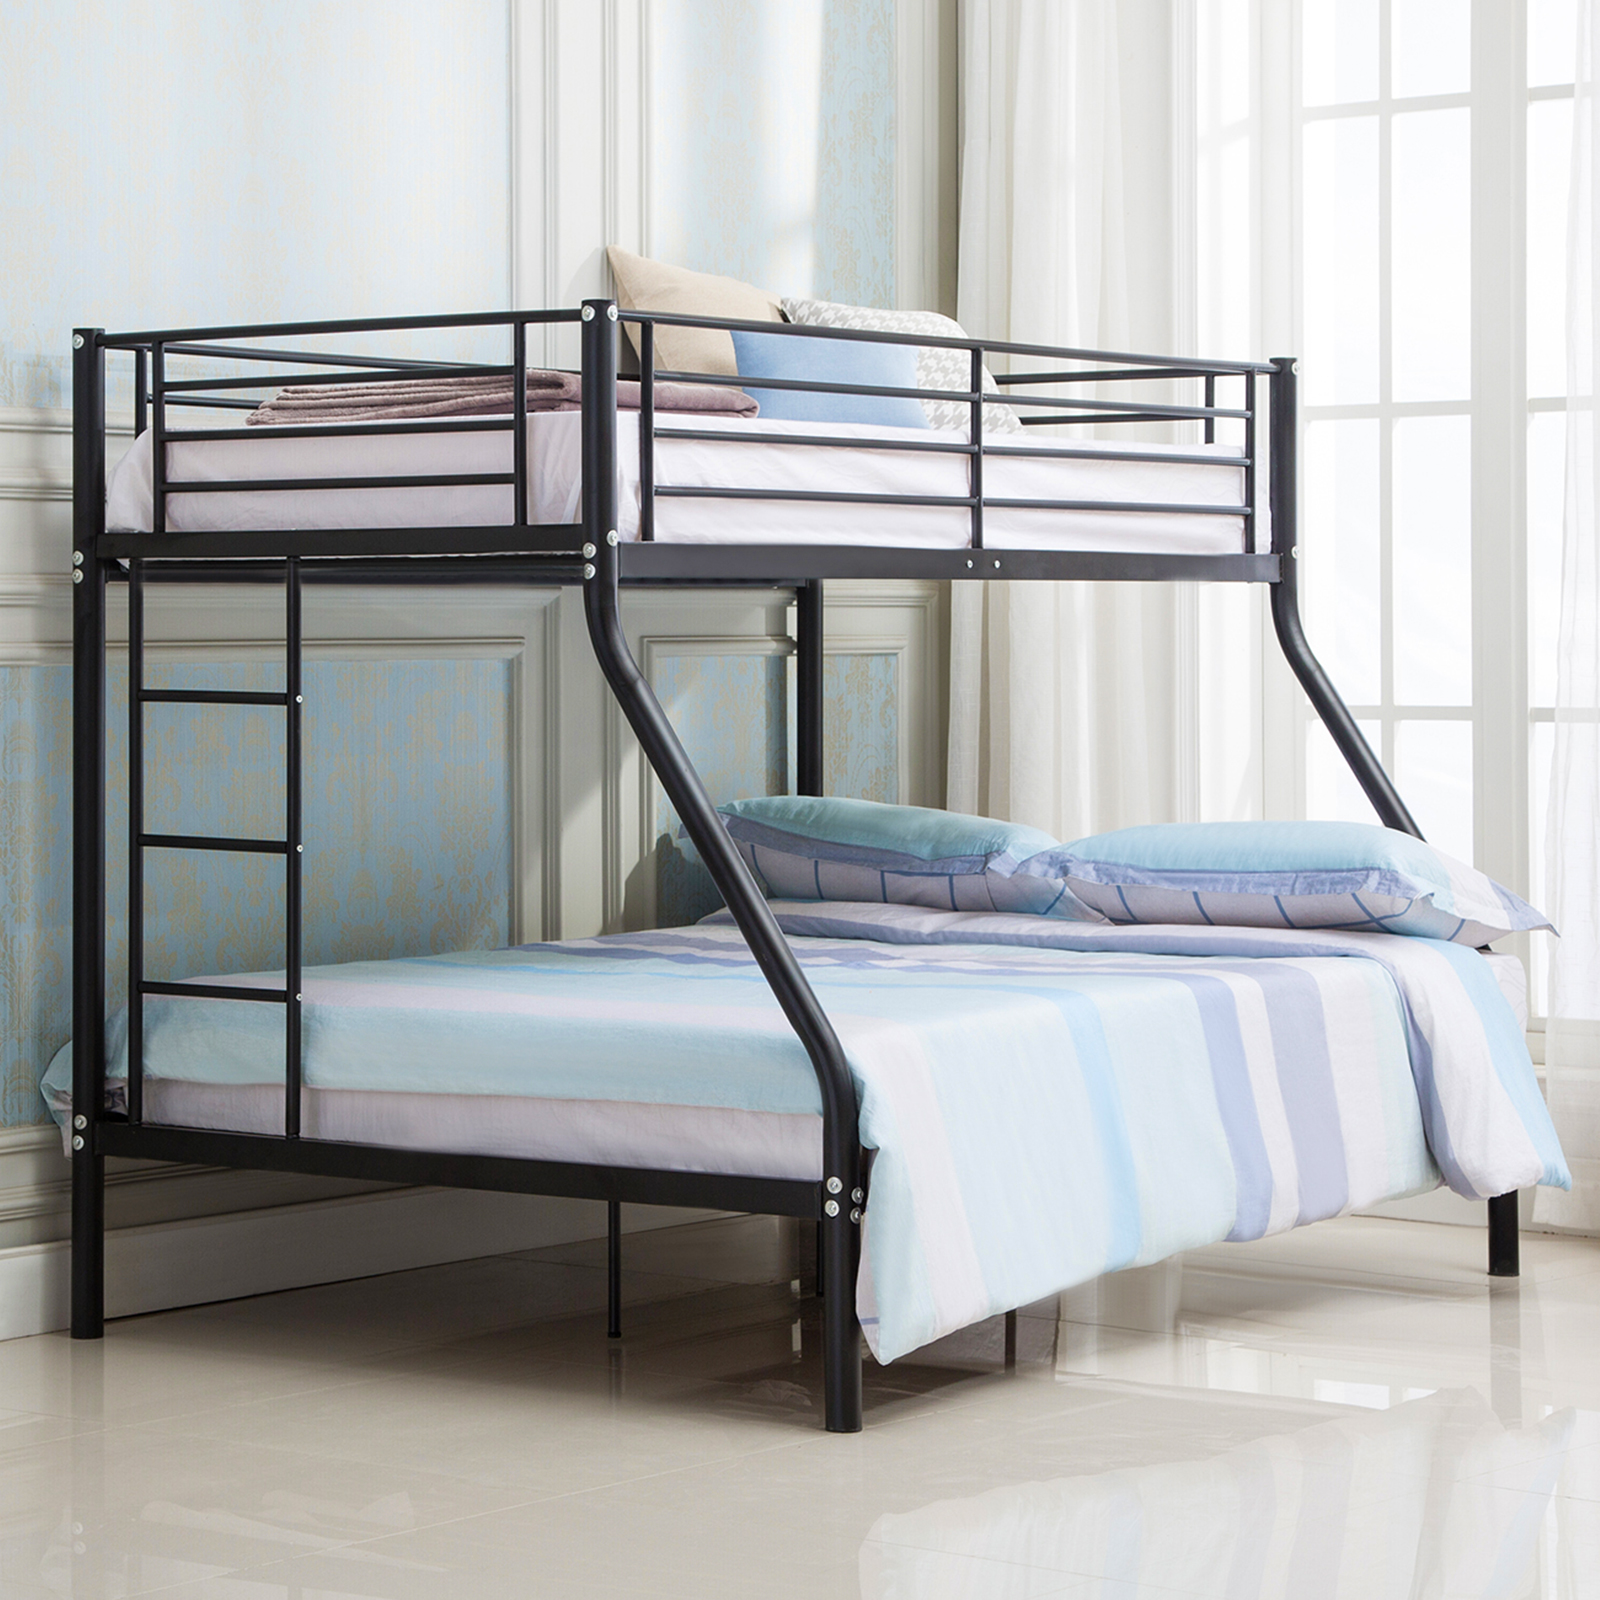 Bunk Beds Frame Metal Twin over Full Ladder Kids Teens Adult Dorm Bedroom Black Mecor